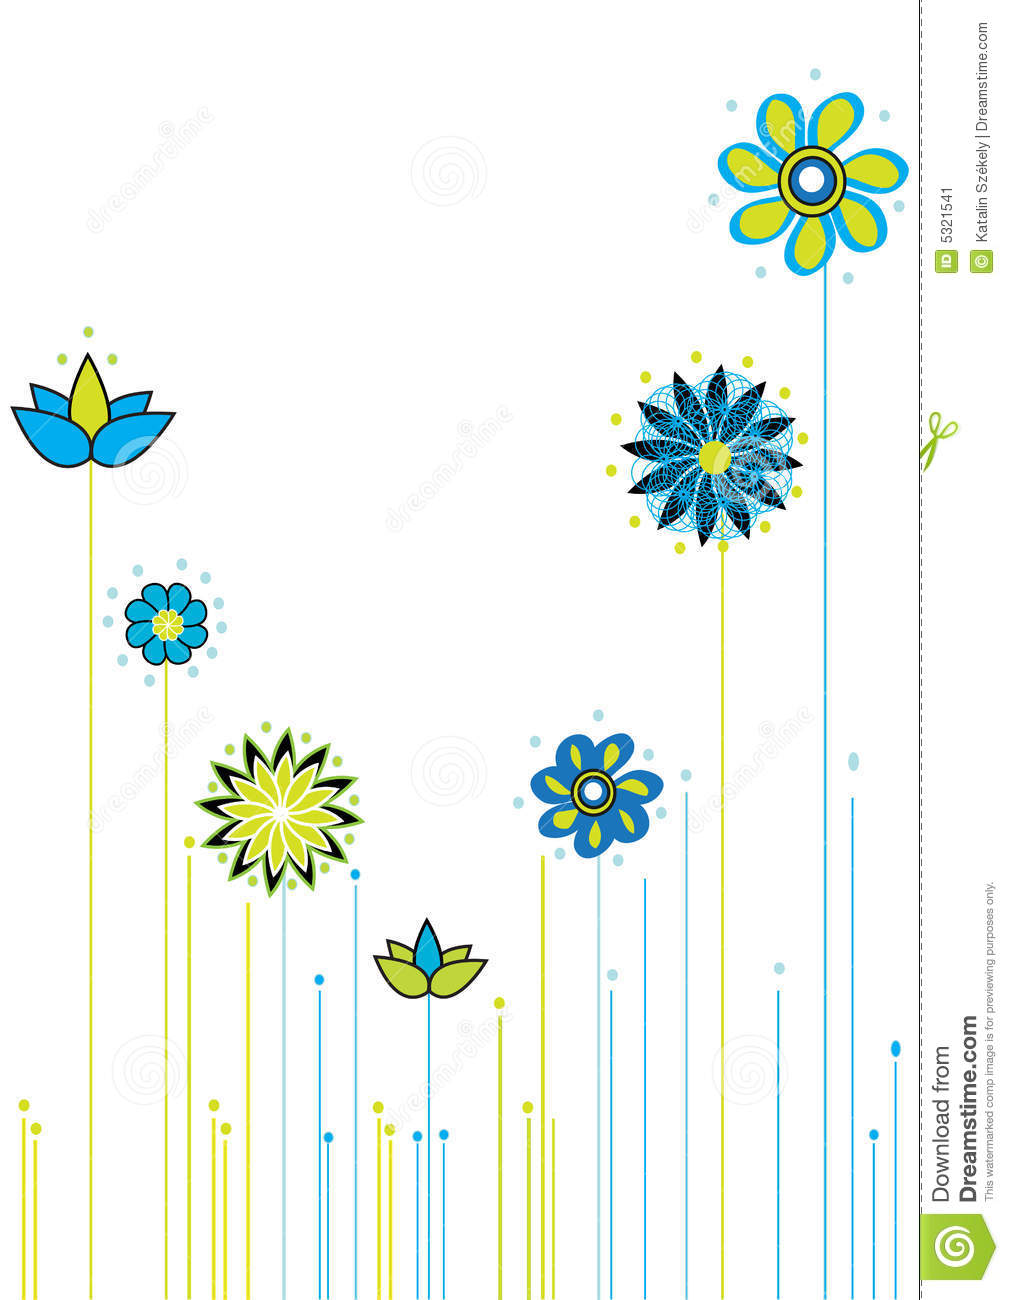 Download Backround Floreale Di Abastract Illustrazione di Stock - Illustrazione di fiori, decorazione: 5321541